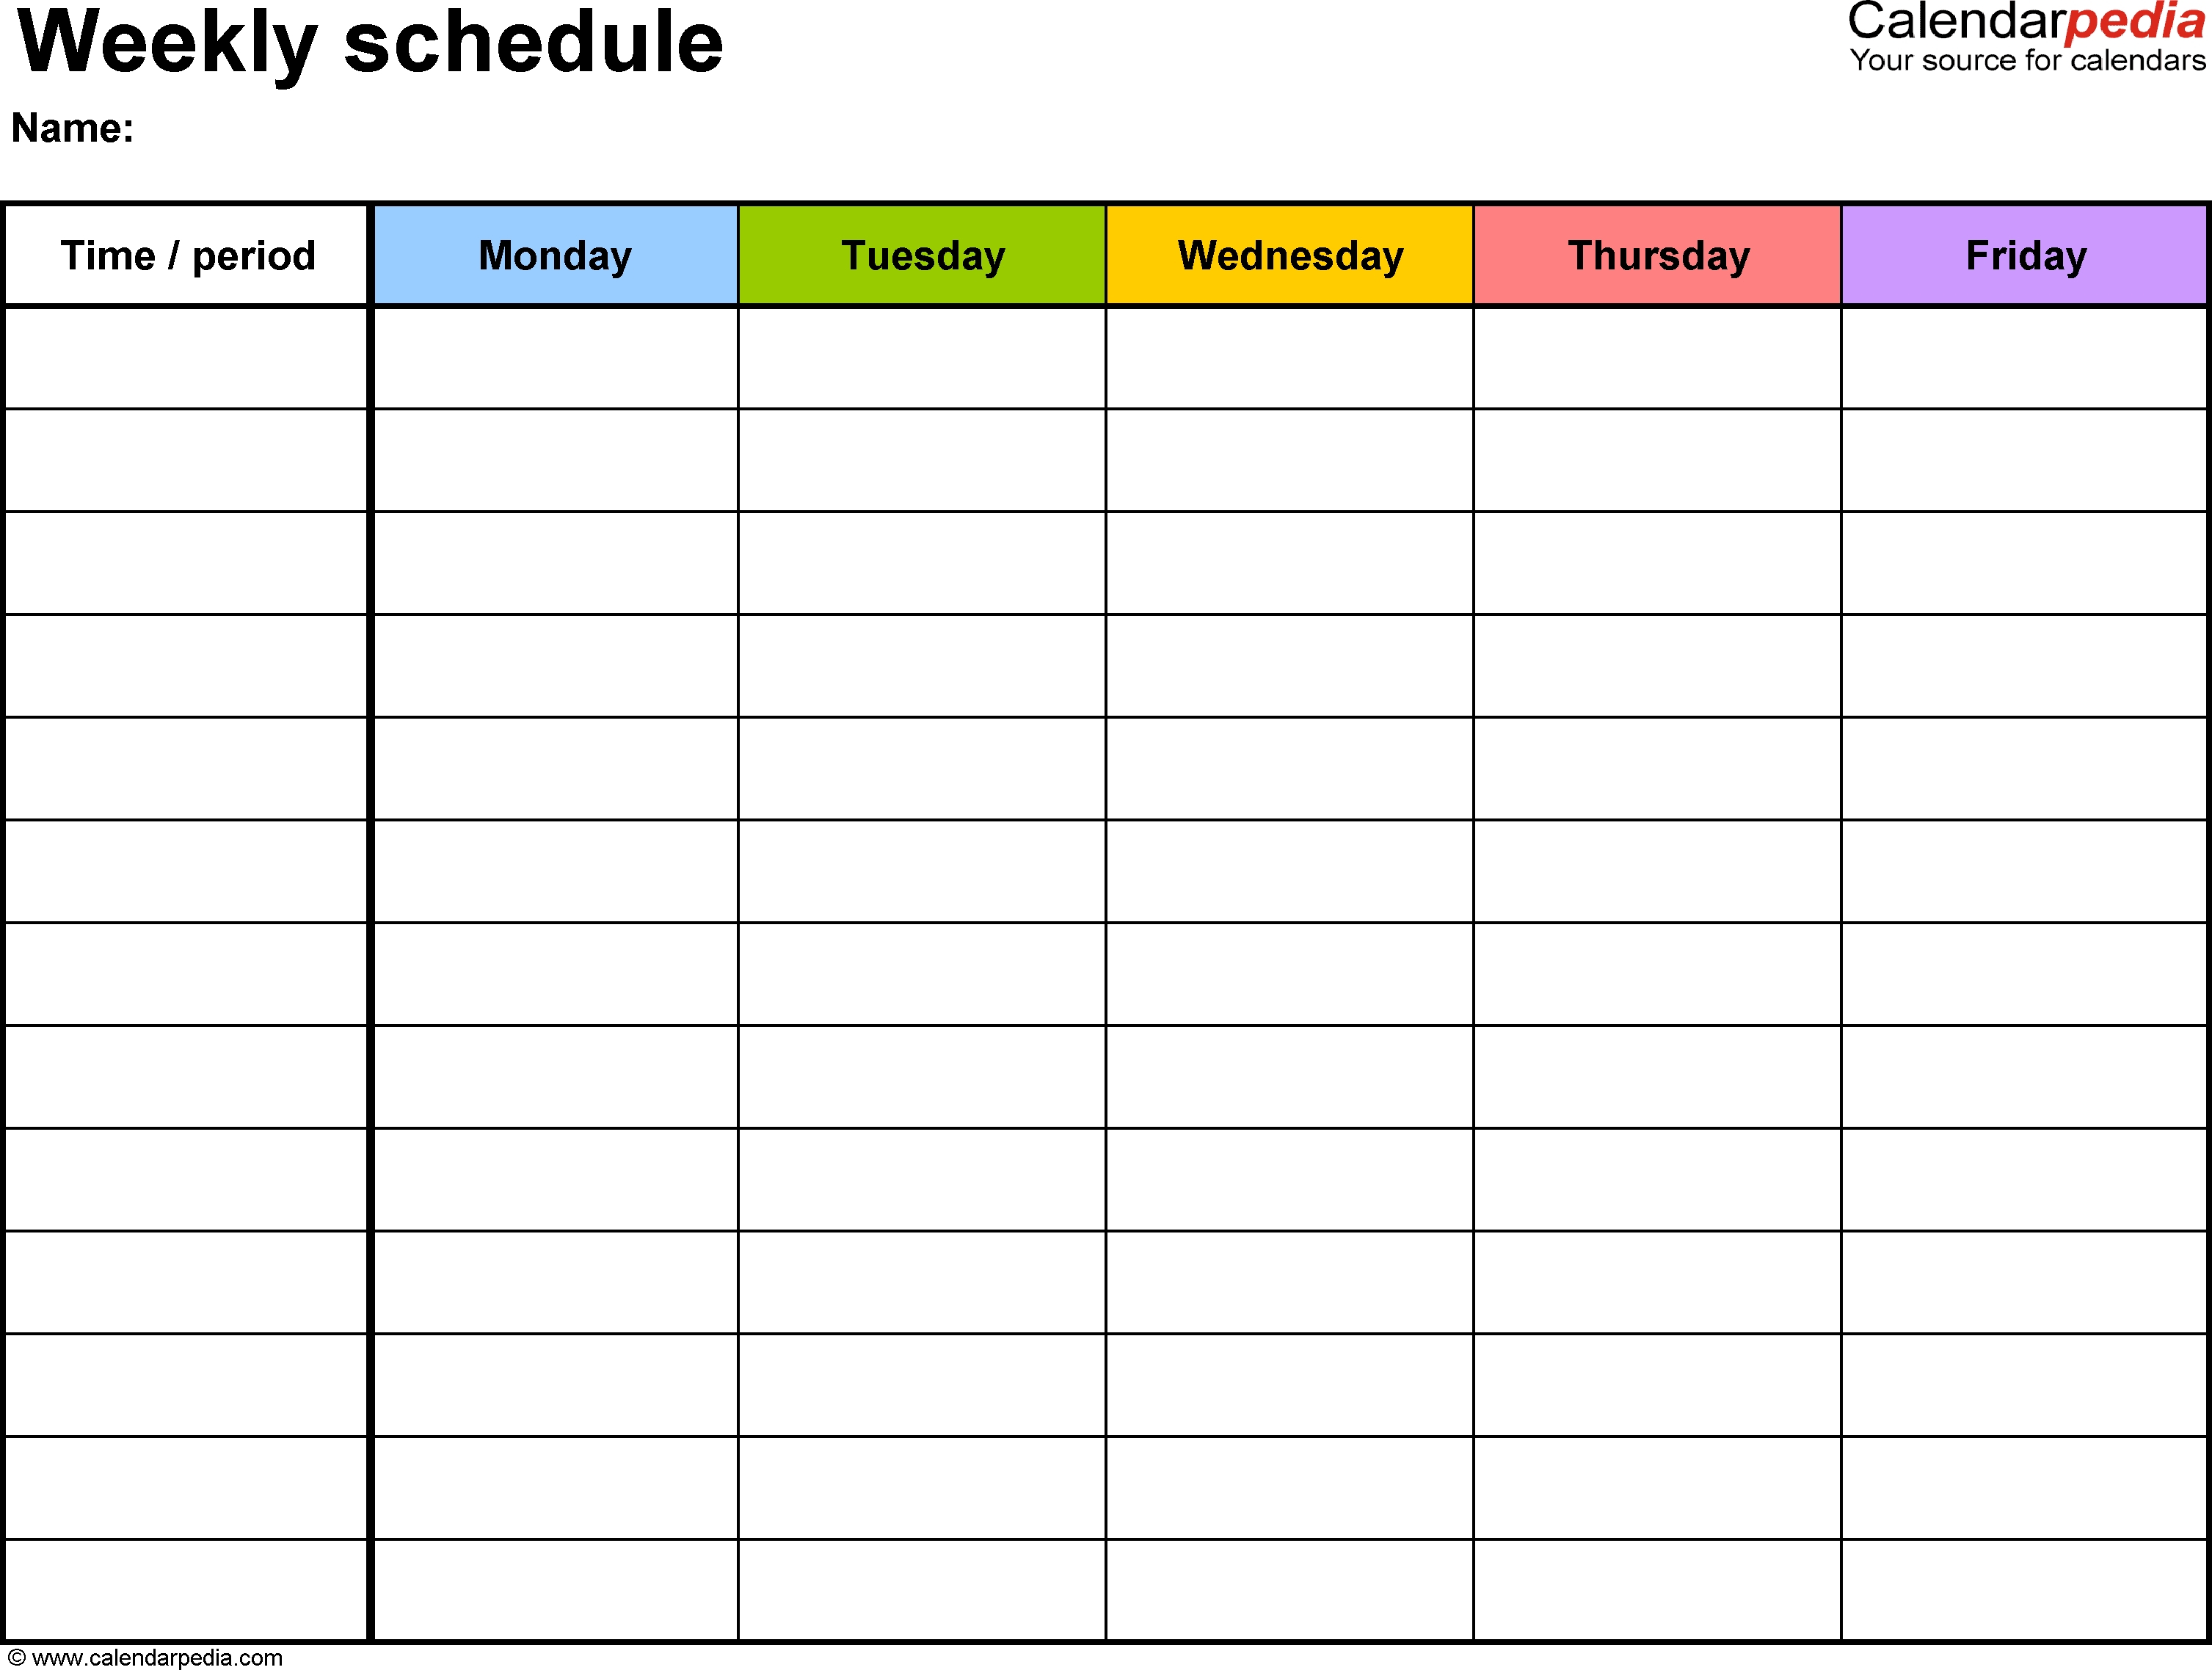 Free Weekly Schedule Templates For Word – 18 Templates-Blank Weekly Planner Template Monday Thru Friday